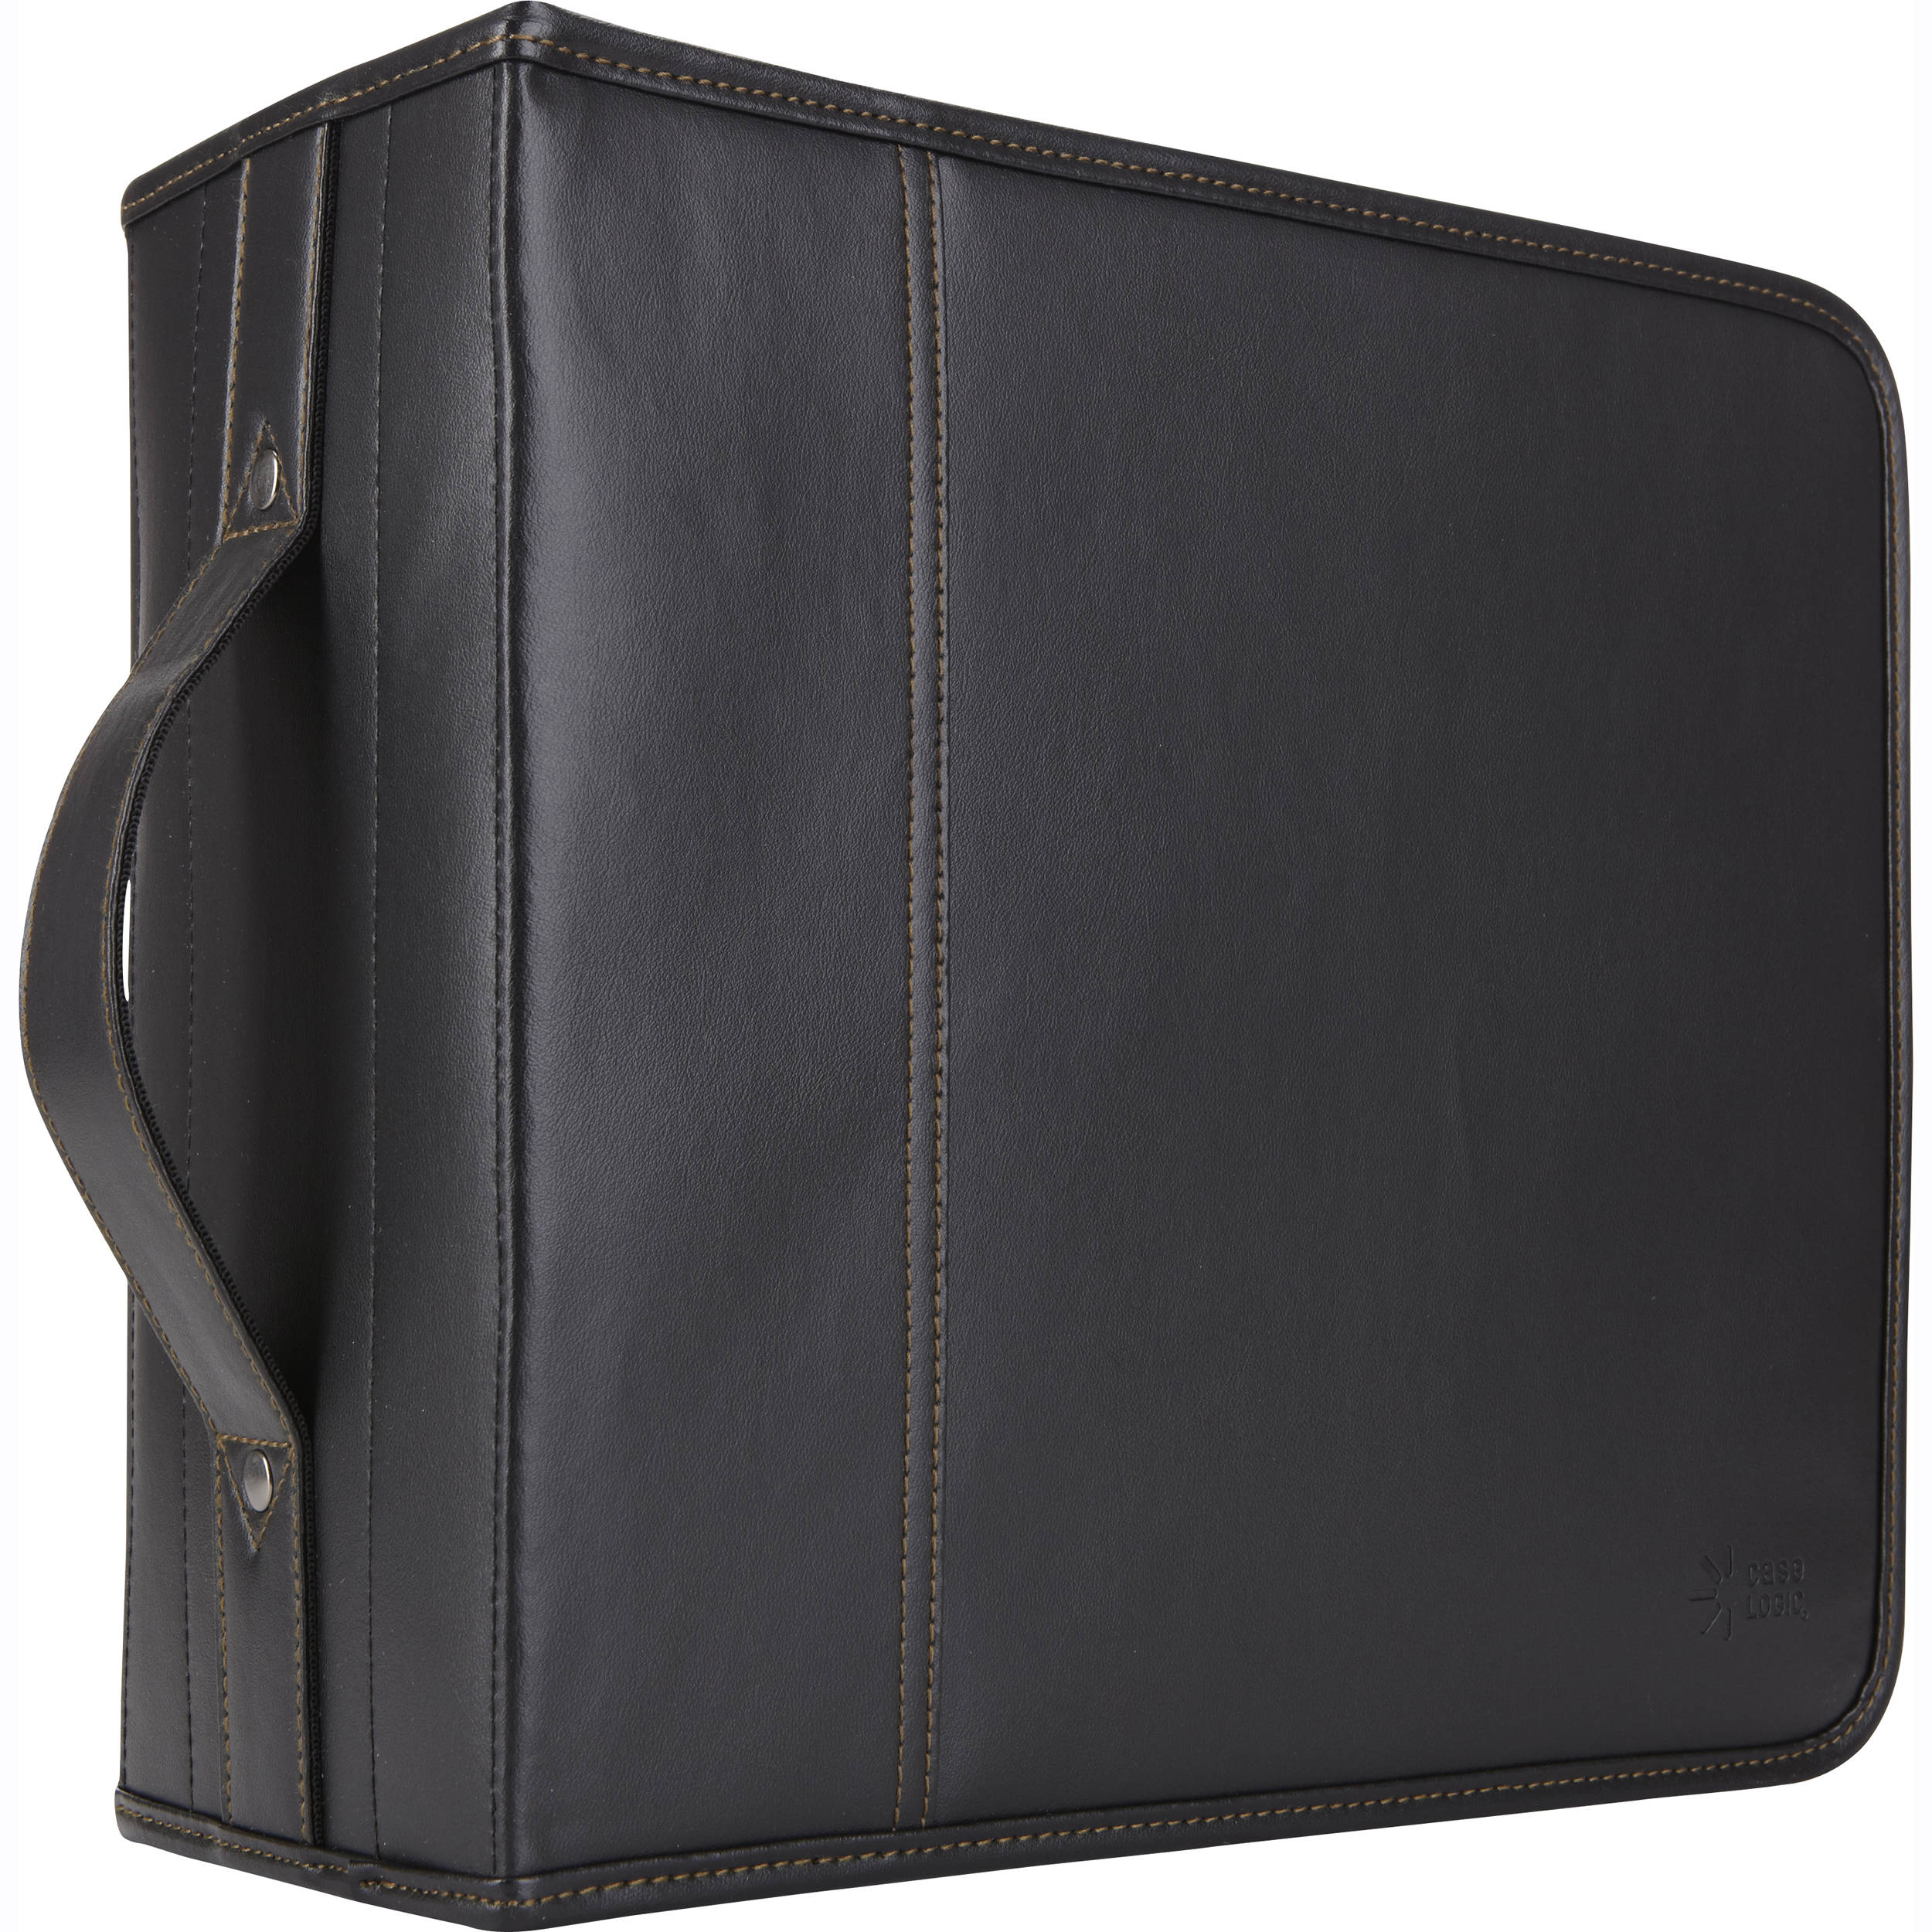 Case Logic KSW-320 320 Capacity CD Wallet - holds 320 + 16 CDs or DVDs  without Jewel Cases (Black Koskin)